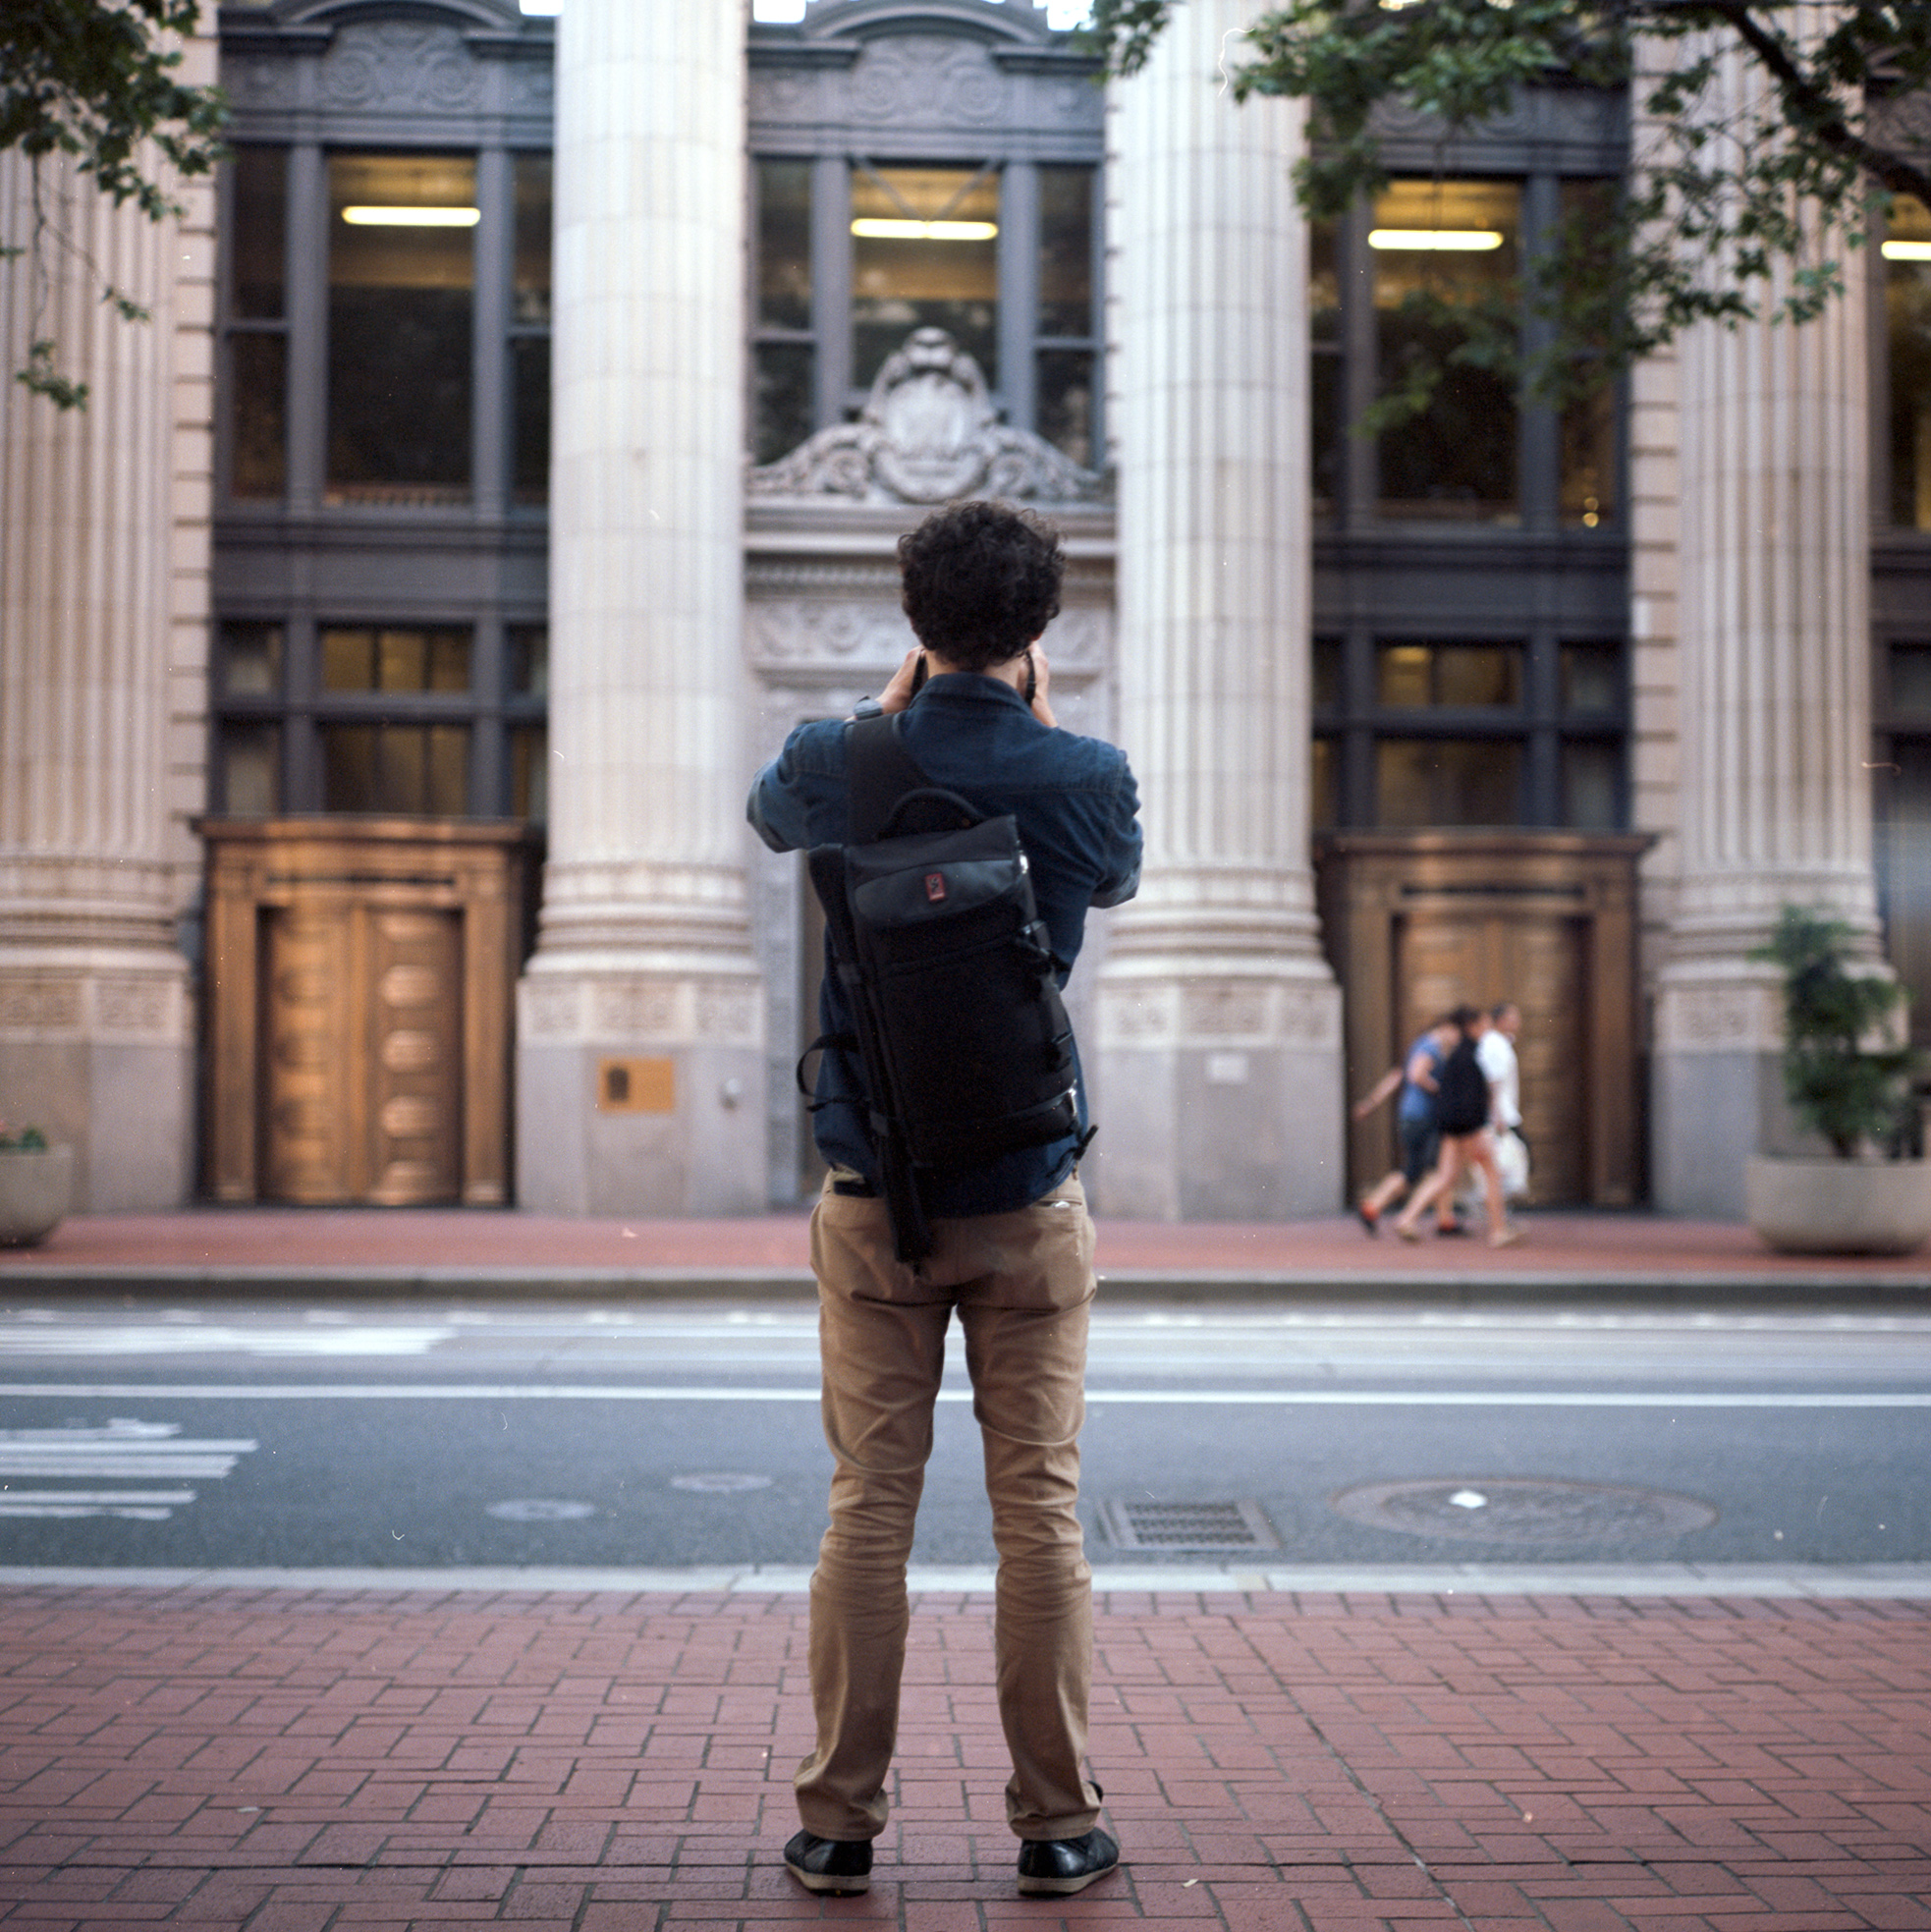 Seth, a fellow photographer, taken a photo of the US National Bank, downtown Portland, OR